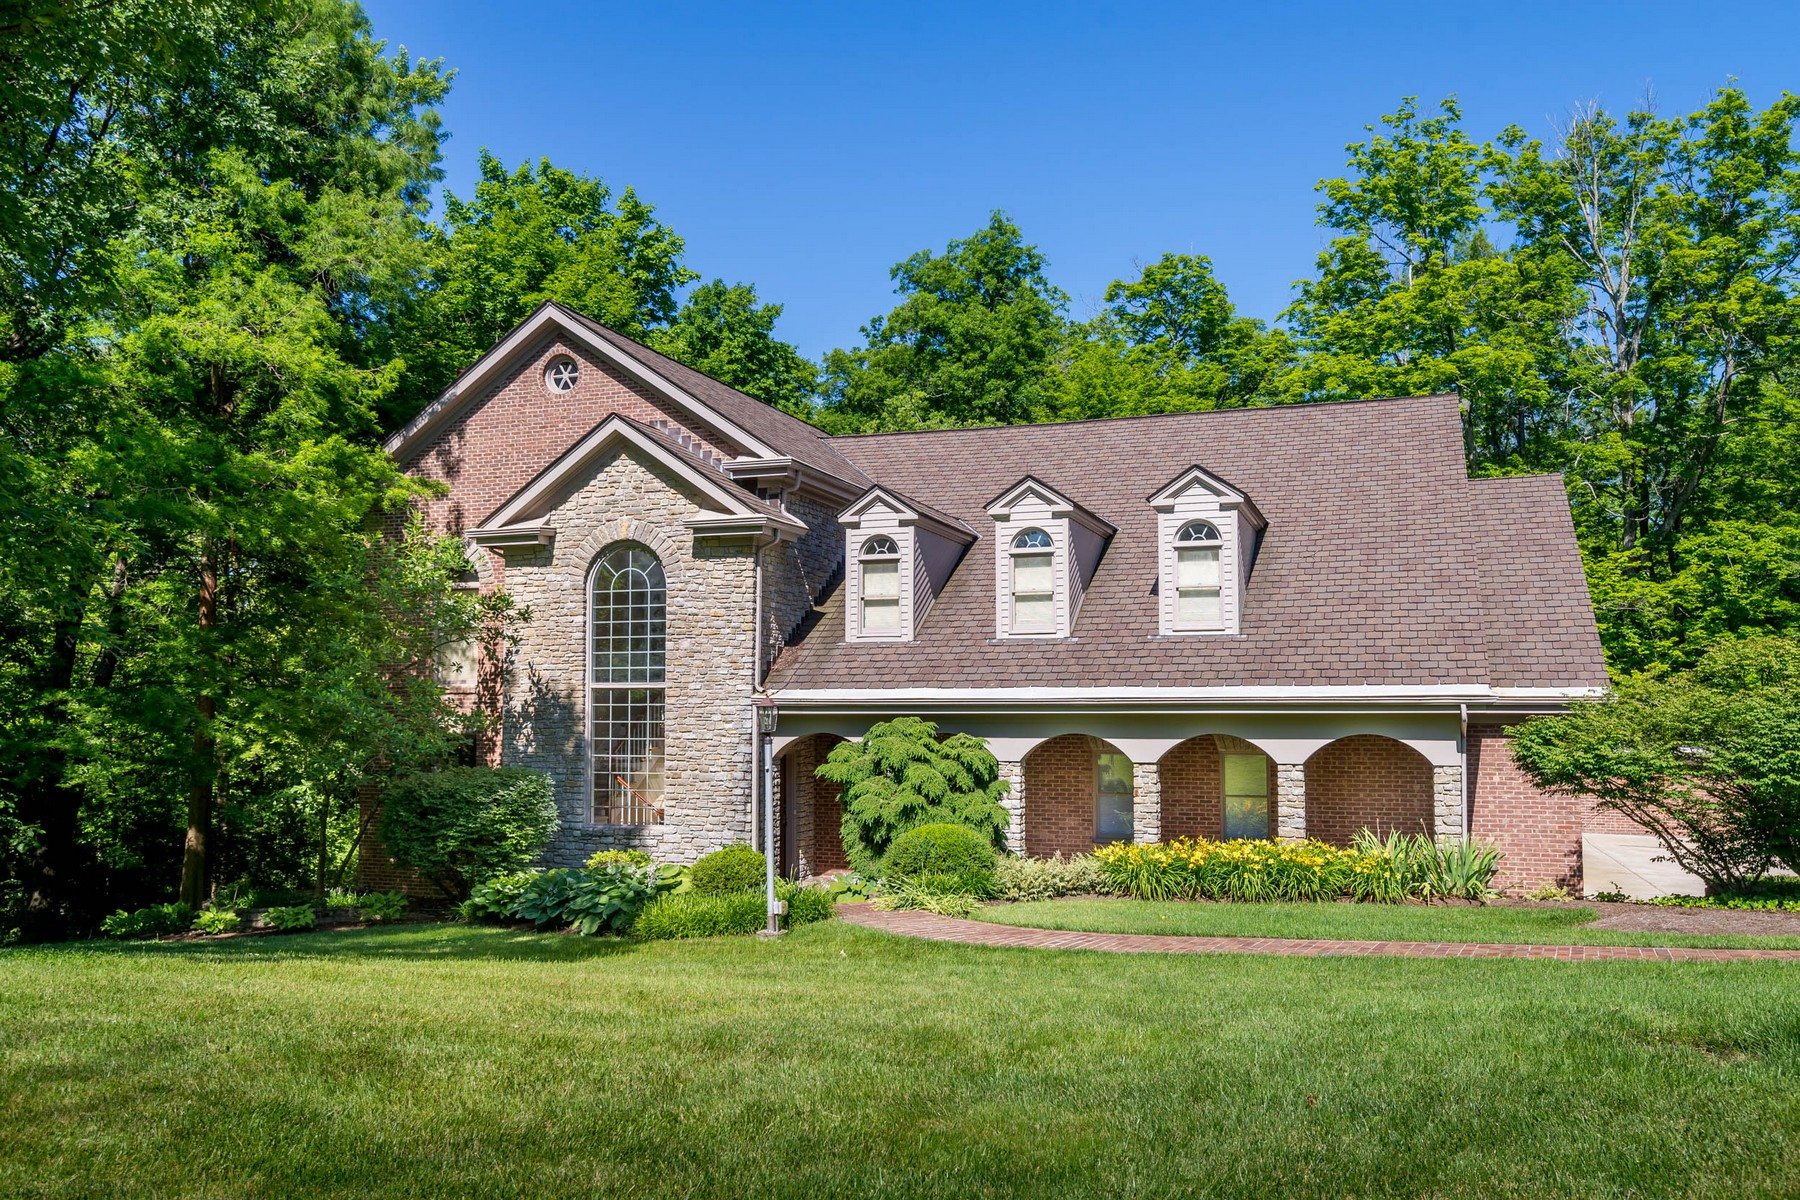 Single Family Home for Sale at 3209 Hobcaw Lane Lexington, Kentucky, 40502 United States